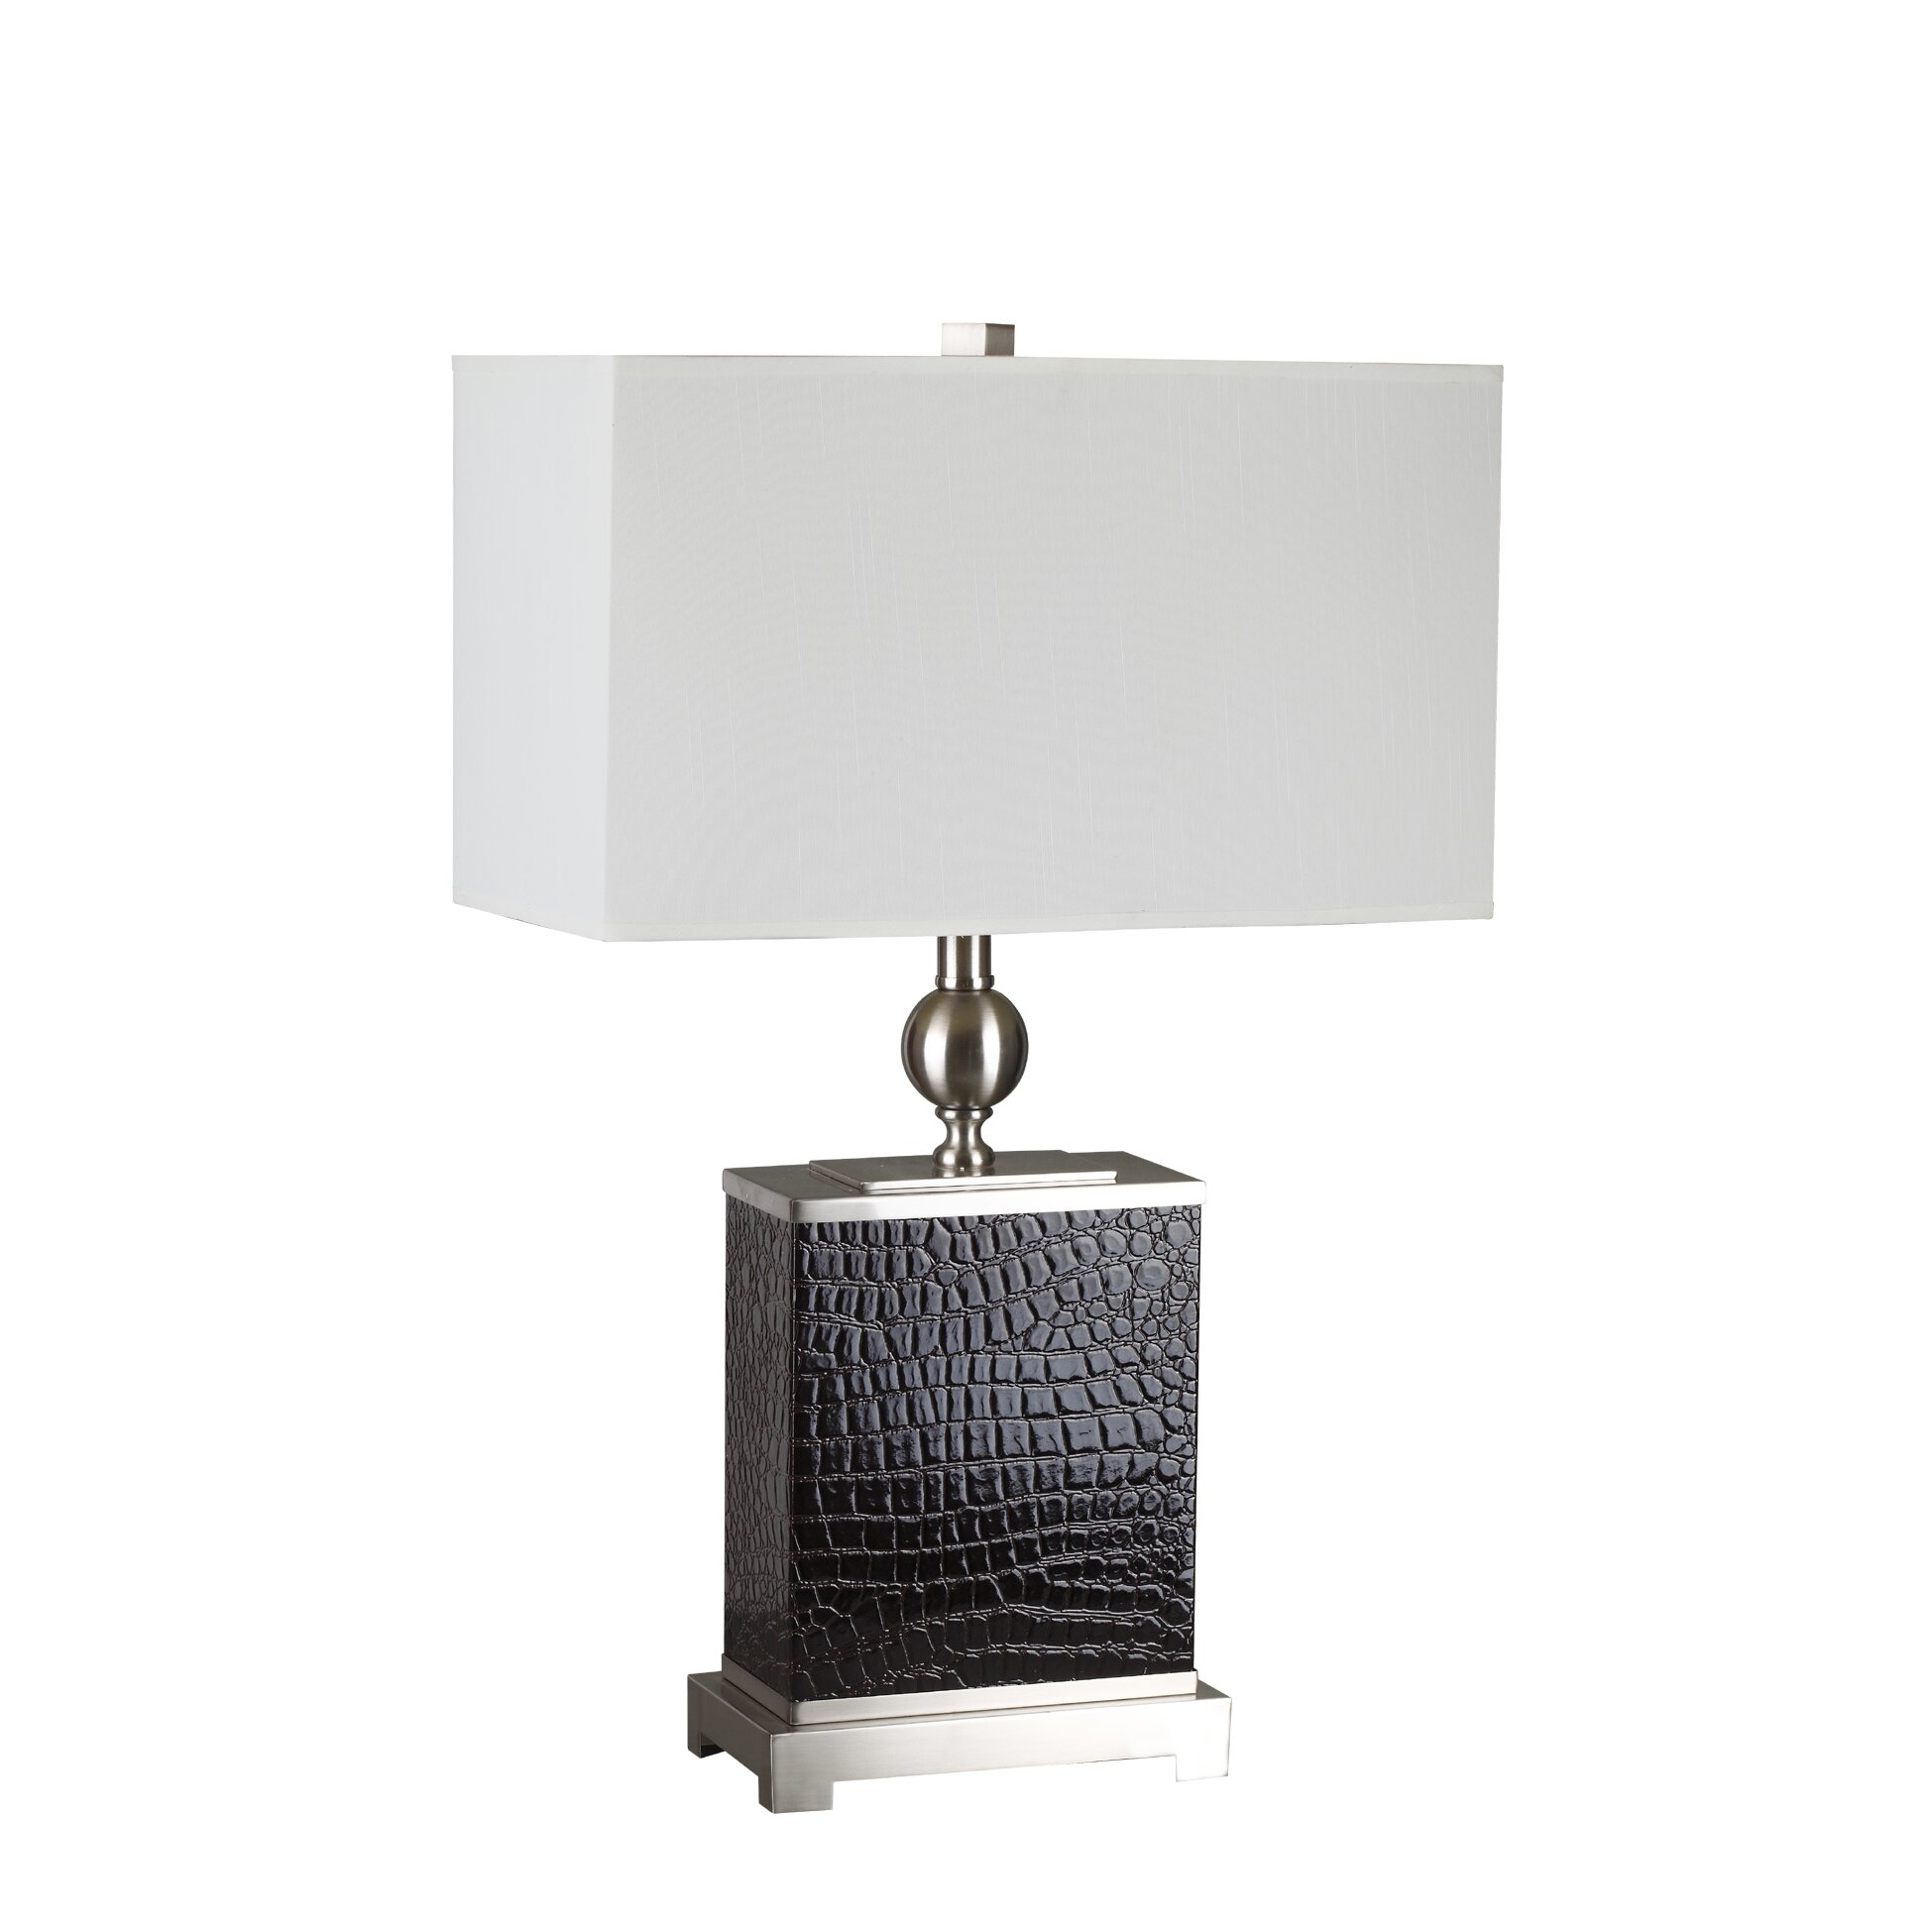 "Shelton 25"" H Table Lamp with Rectangular Shade 